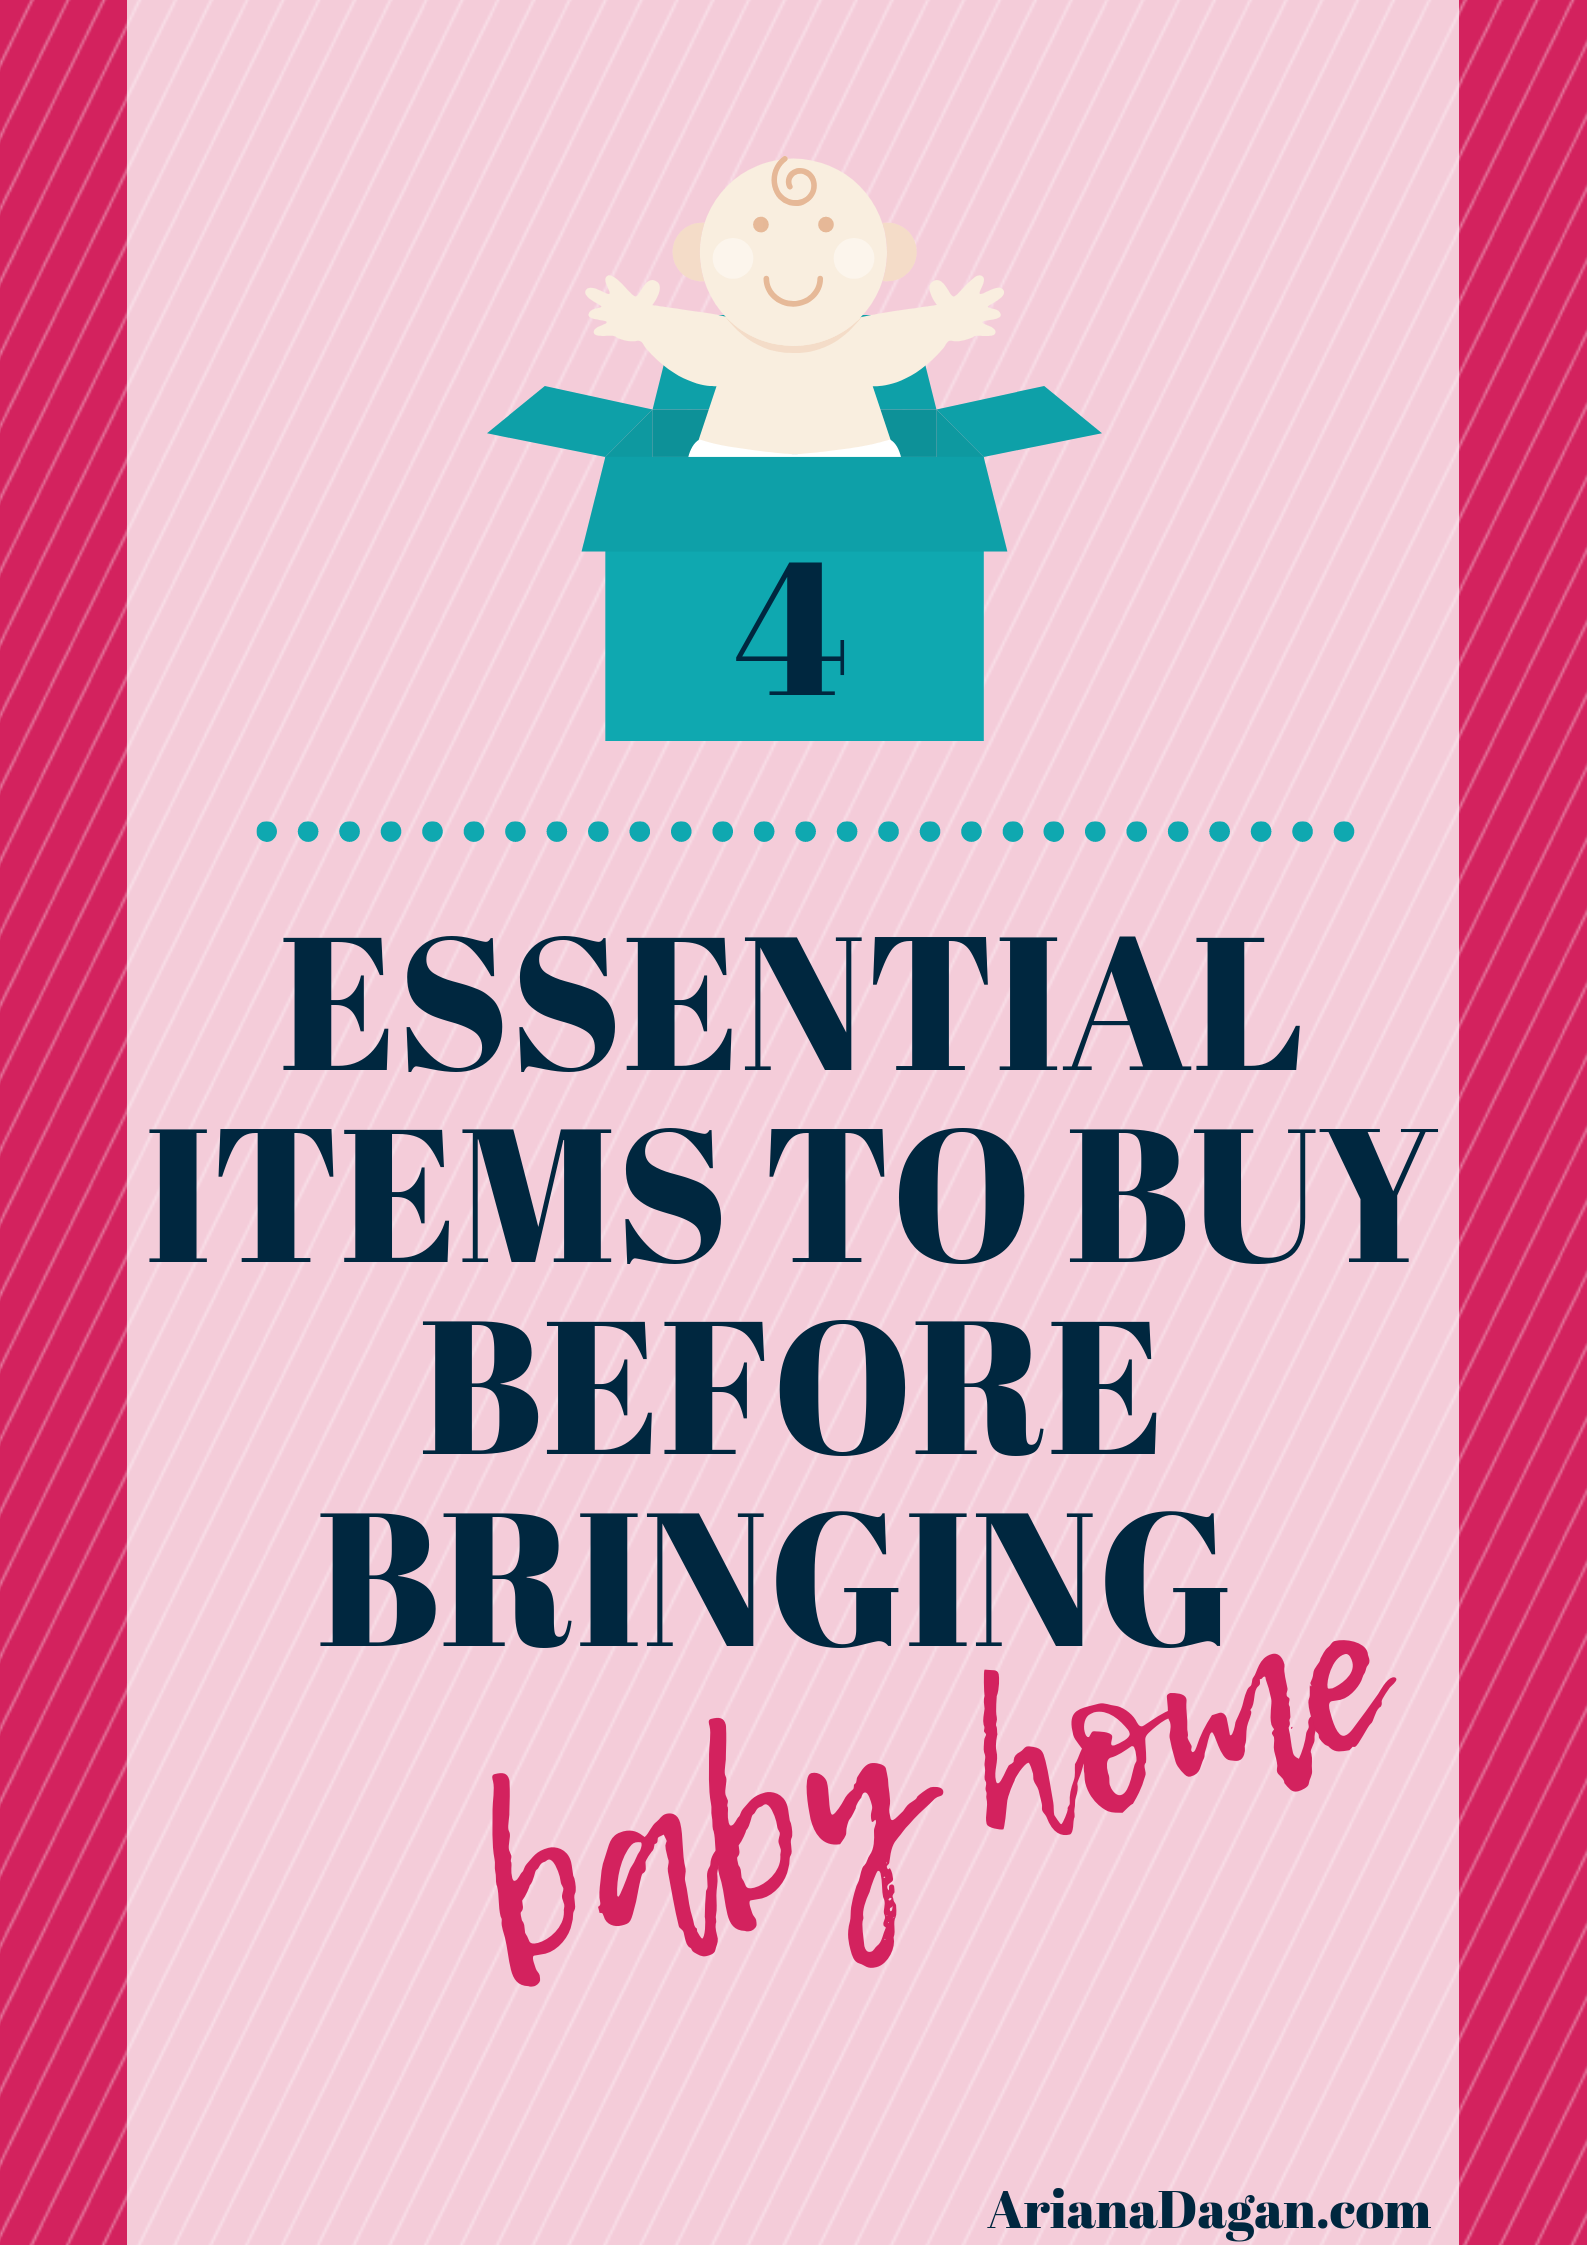 Mama's Corner | 4 Essential Items to Buy Before Bringing Baby Home